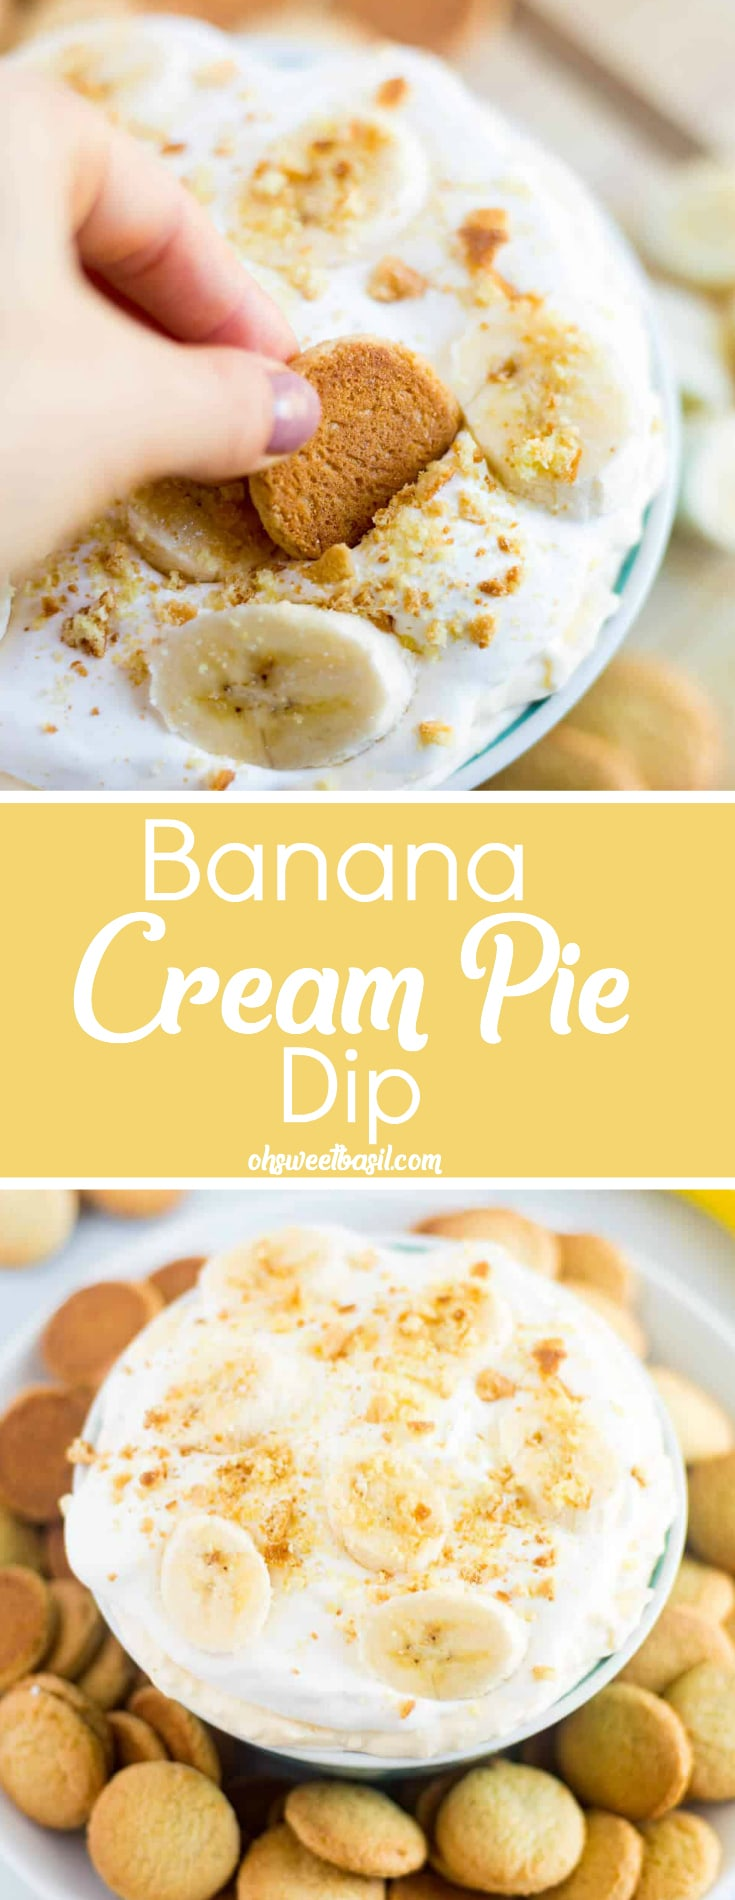 A bowl of delicious banana cream pie dip with bananas and nilla wafers crushed on top